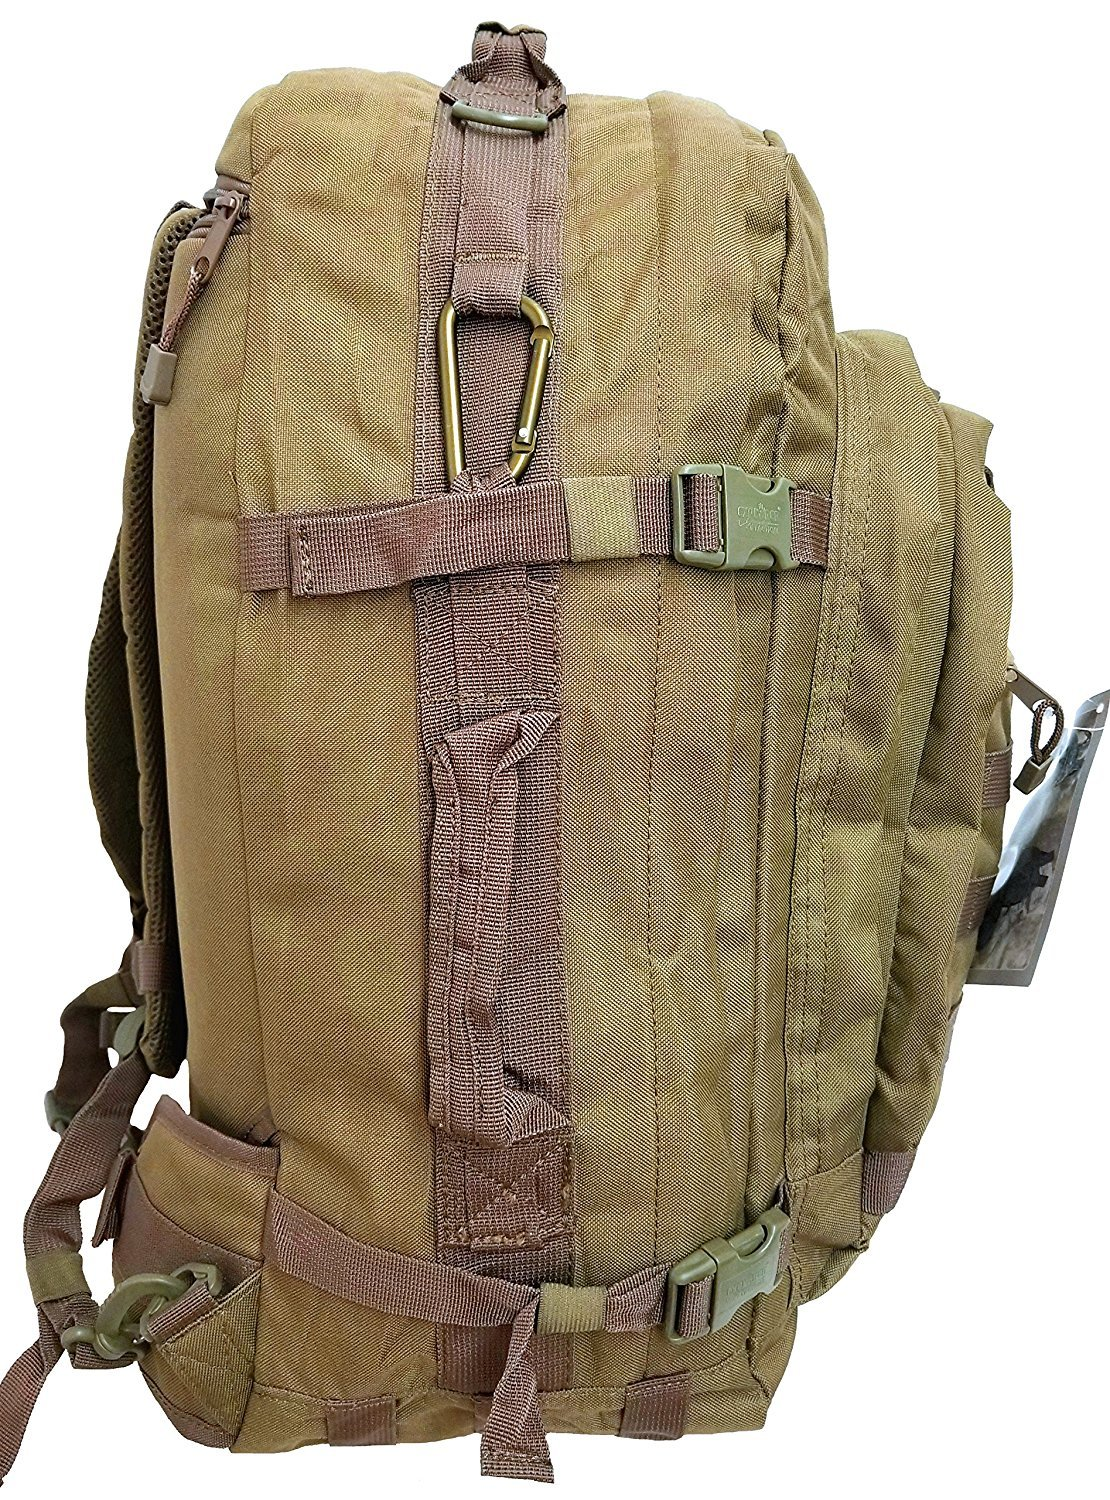 Every Day Carry 3-Day Tactical Pack EDC Backpack with Molle Webbing